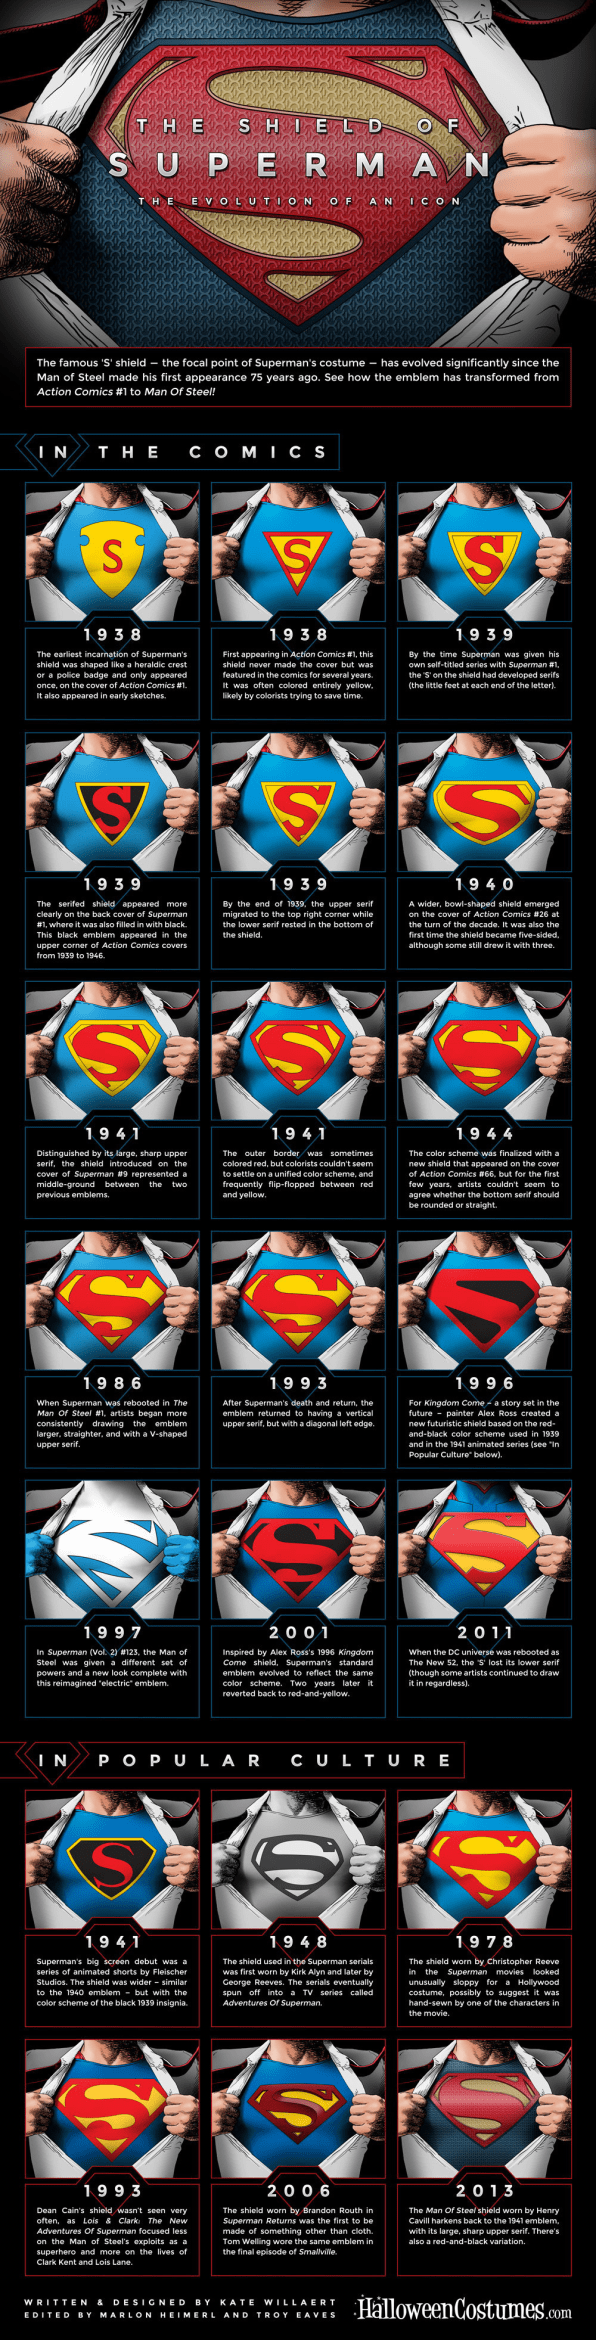 Infographic The Evolution Of The Superman Logo From 1938 To Now